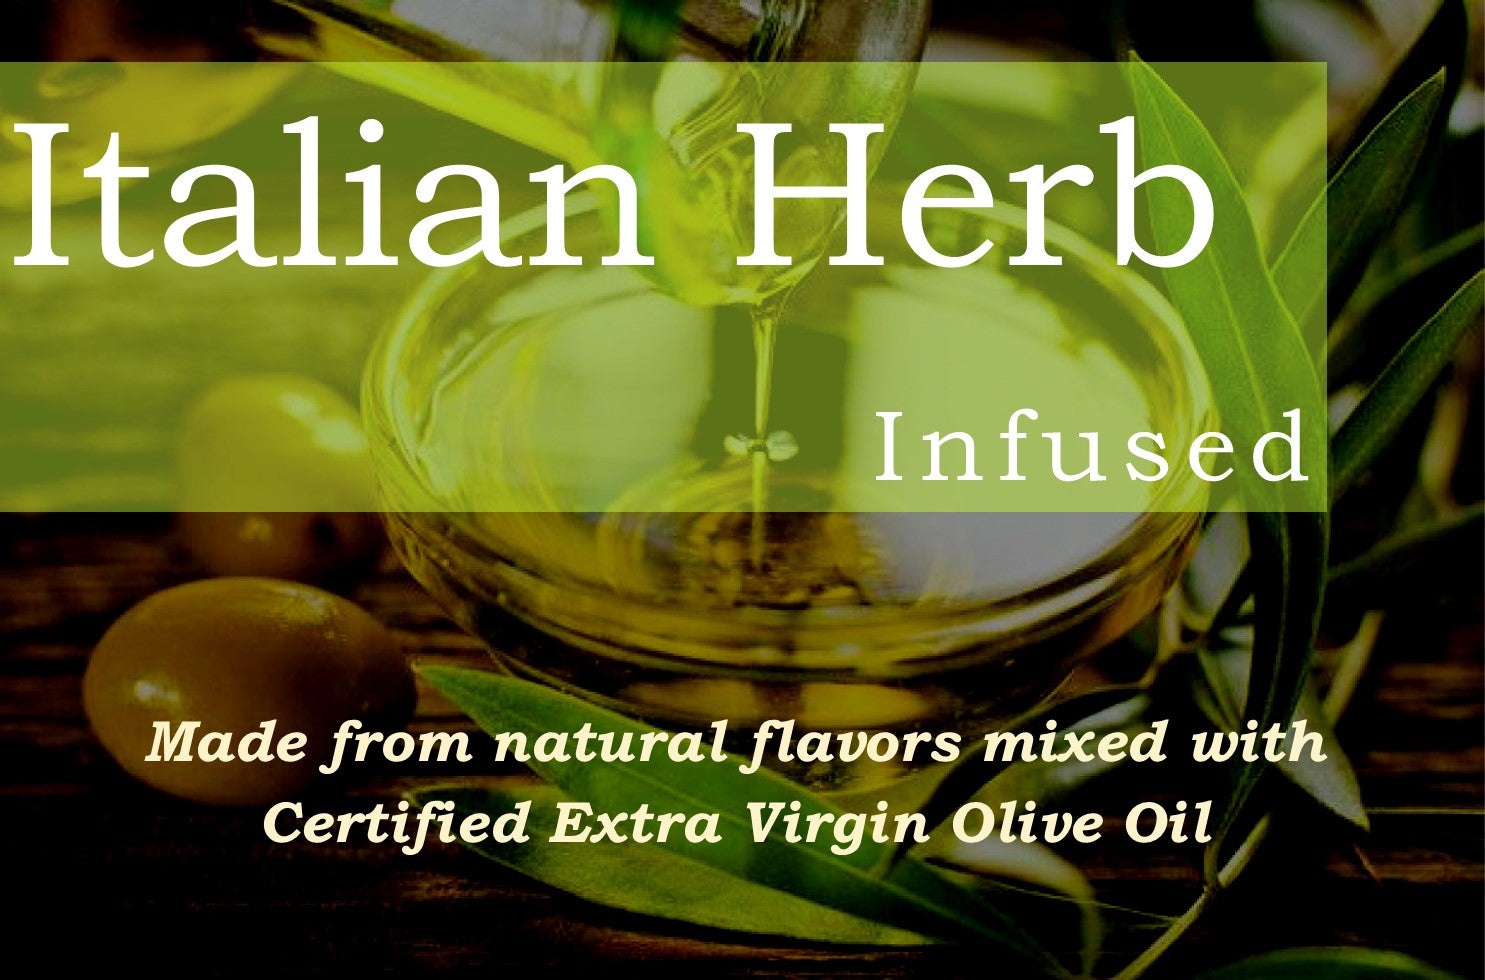 Italian Herbs Infused Olive Oil